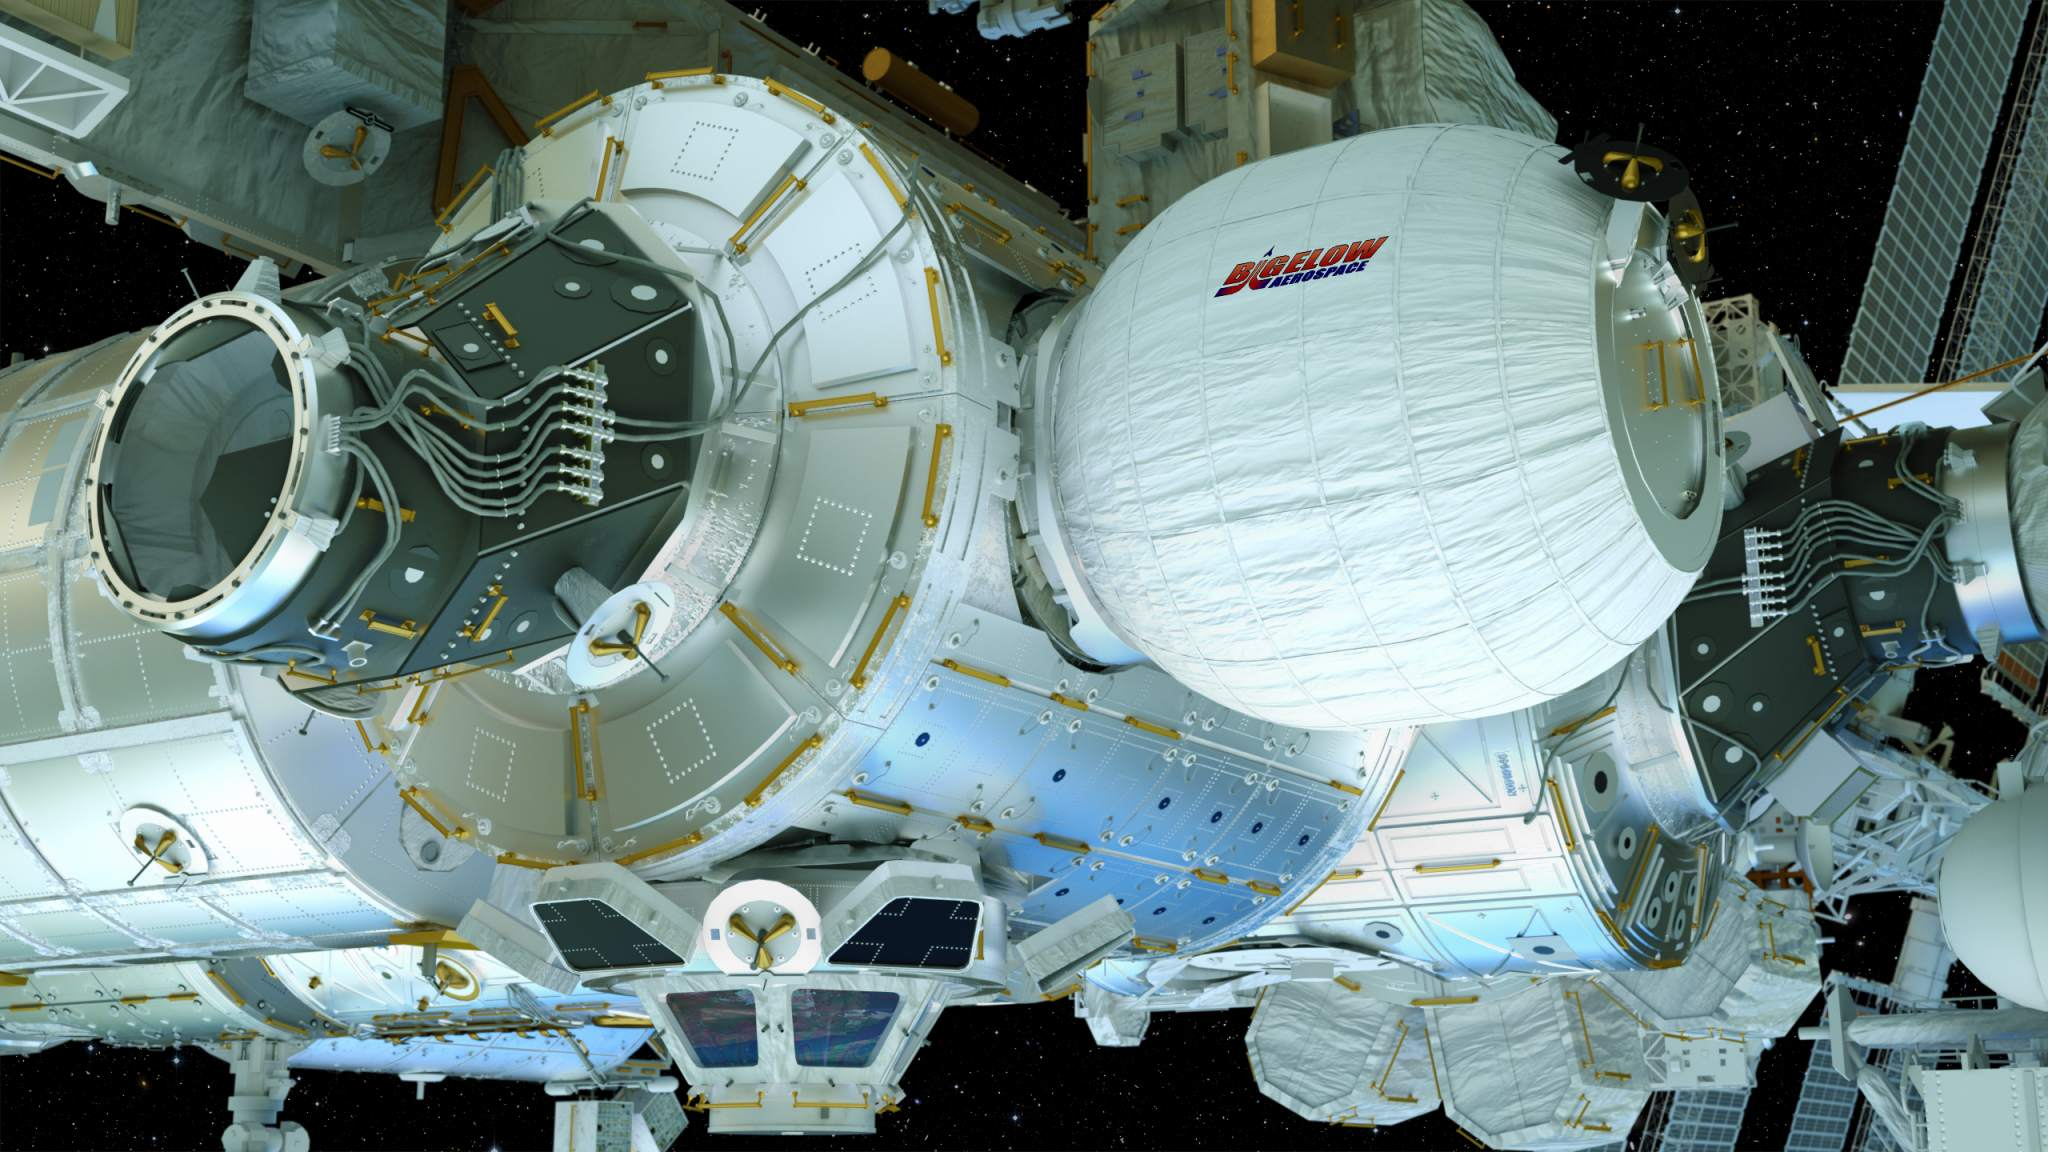 Artist's conception of the BEAM attached to the ISS. Image via Bigelow Aerospace.